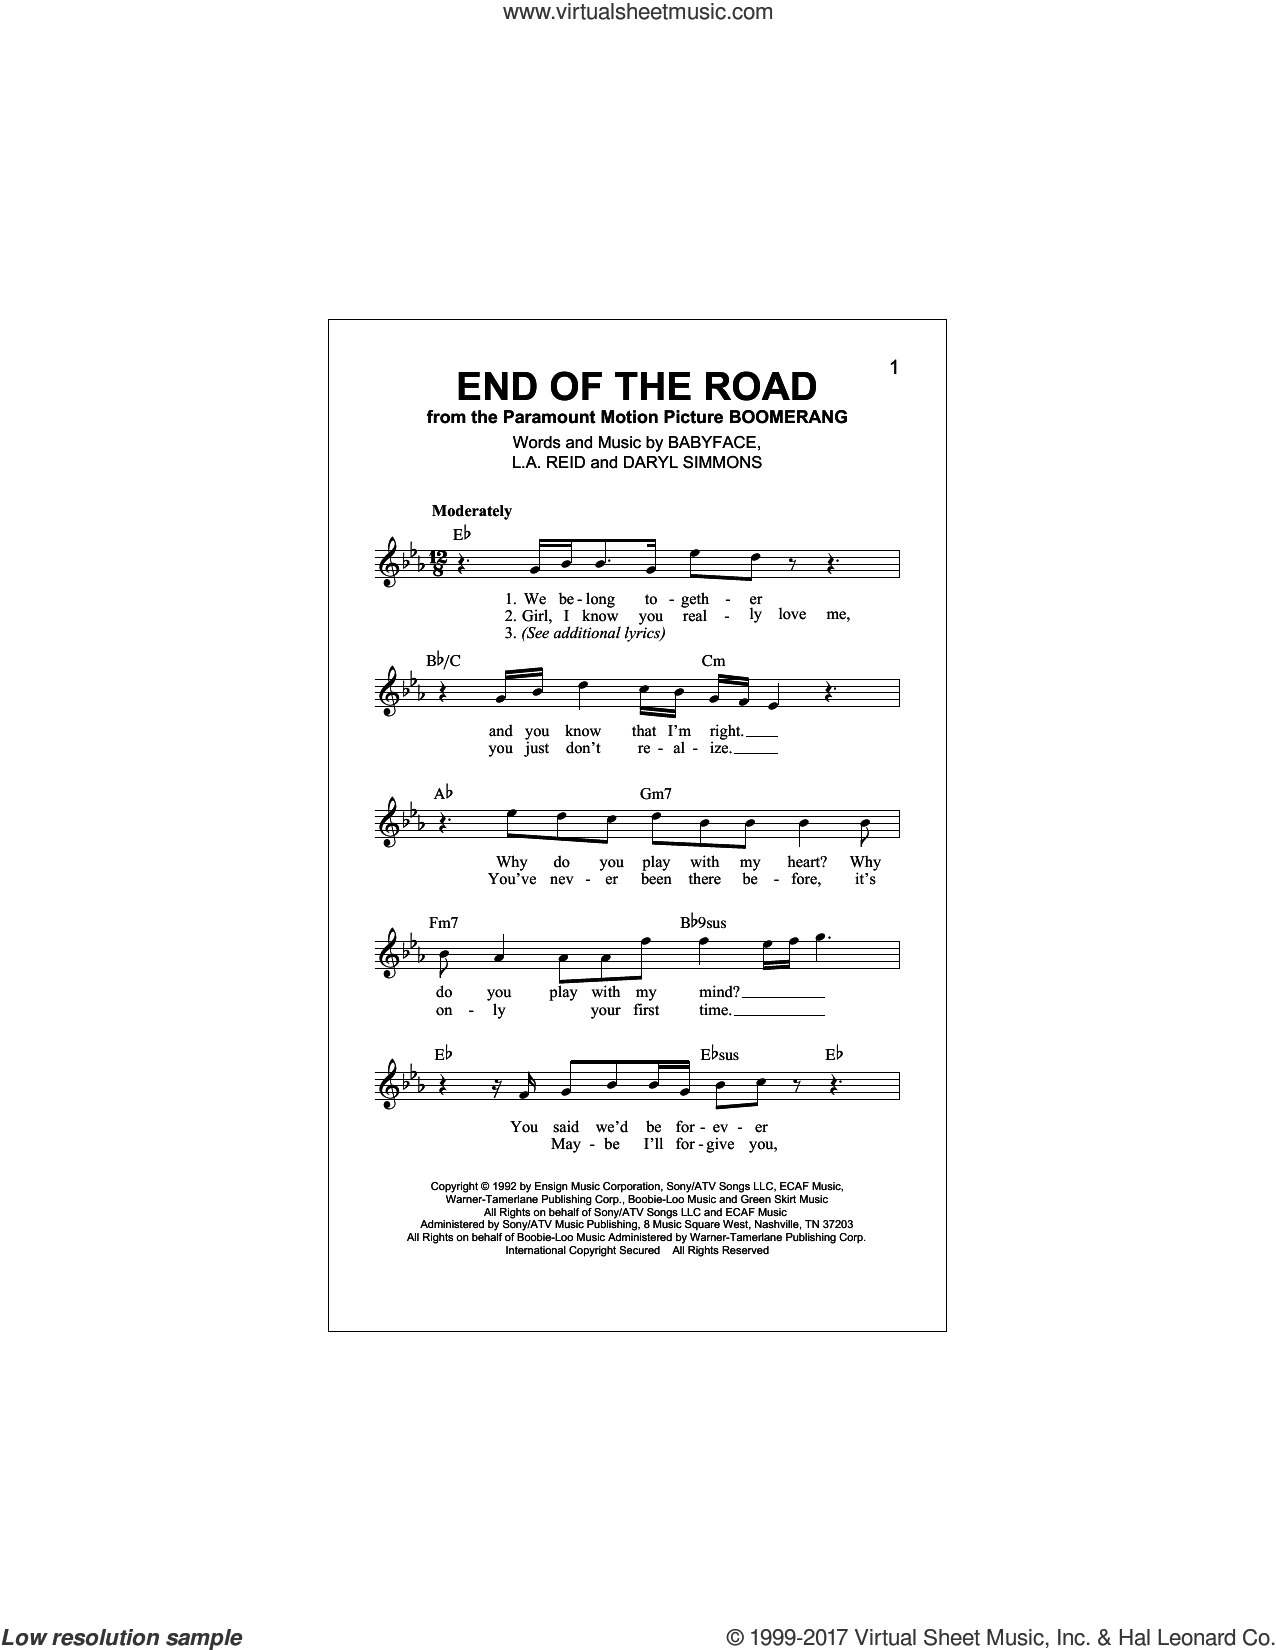 Boyz ii men end of the road watch for free or download video.